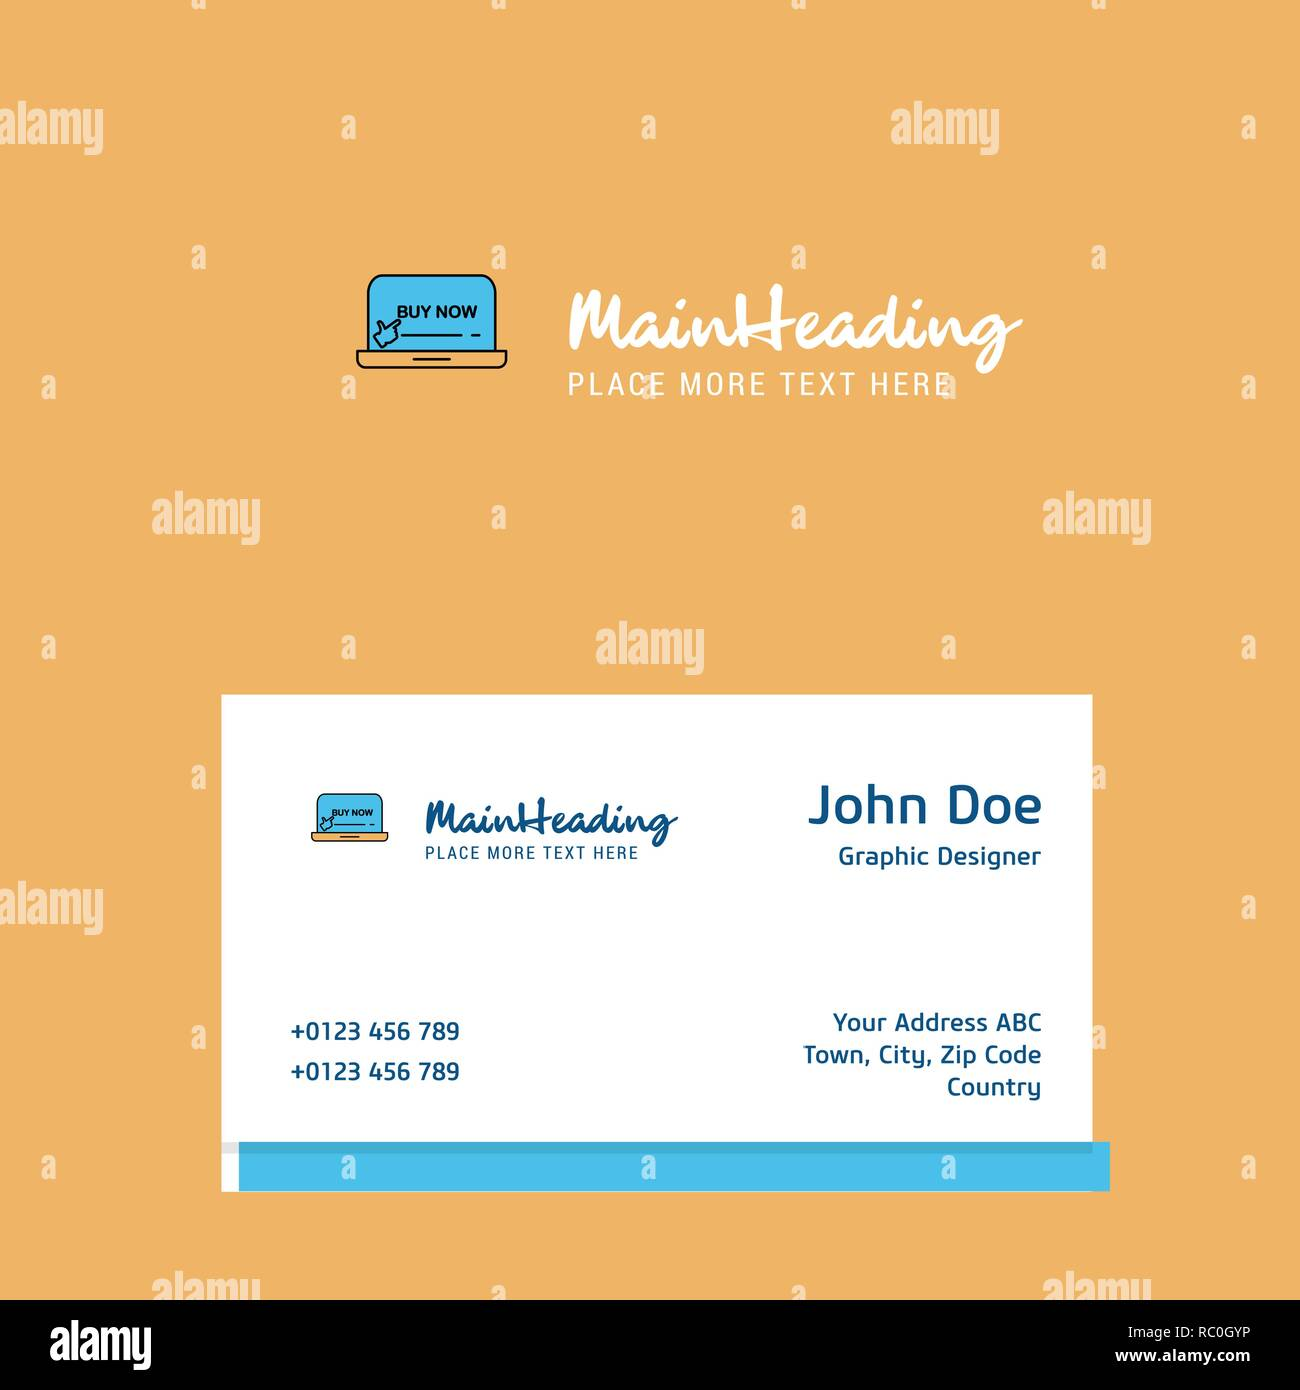 Online Shopping Logo Design With Business Card Template Elegant